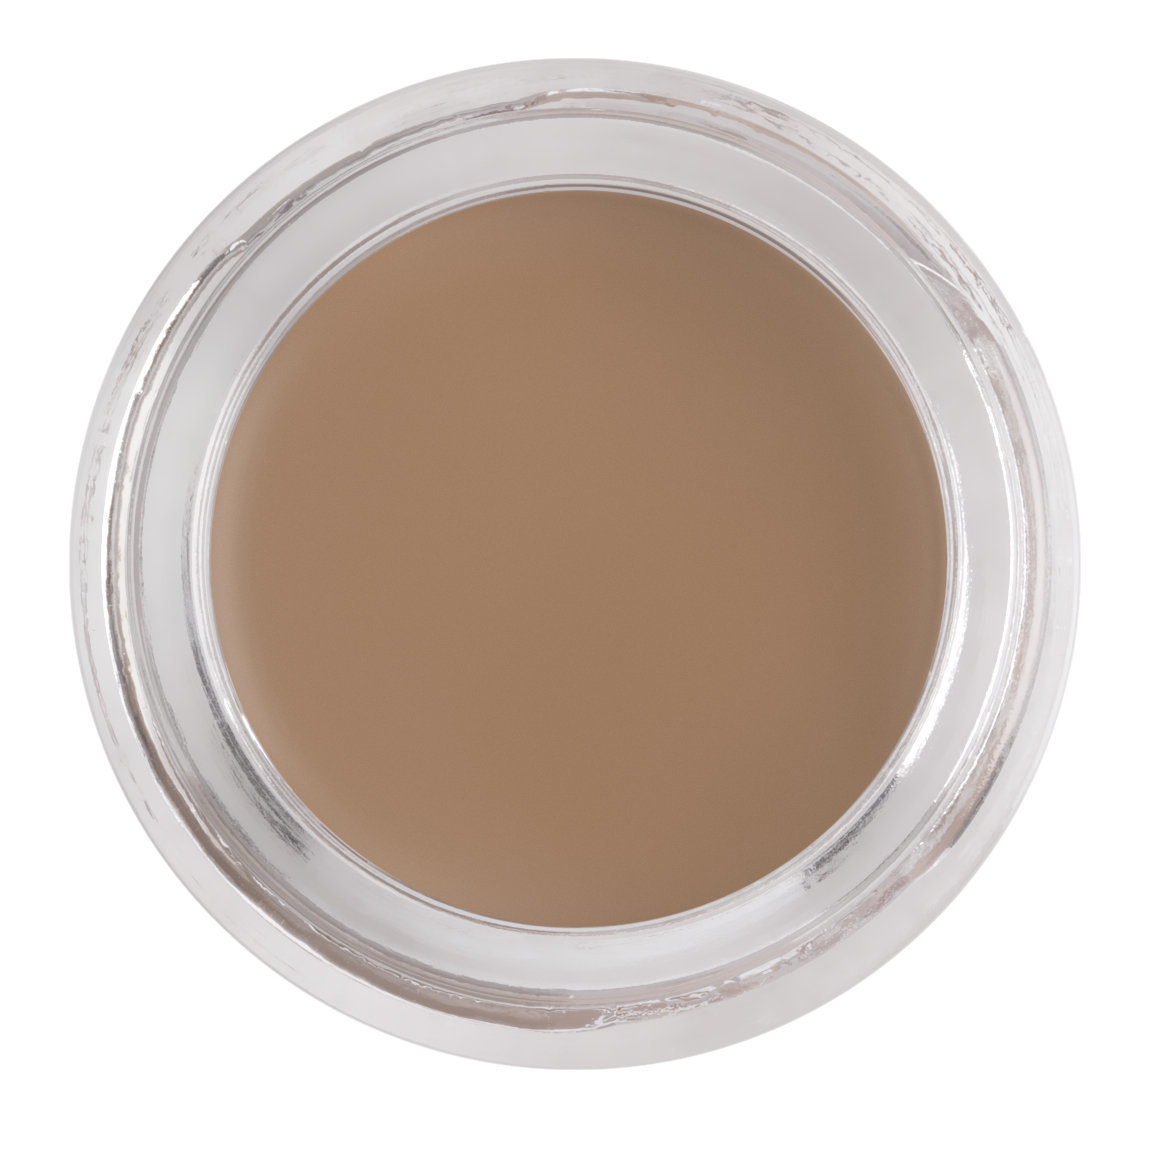 Anastasia Beverly Hills Dipbrow Pomade Blonde alternative view 1.